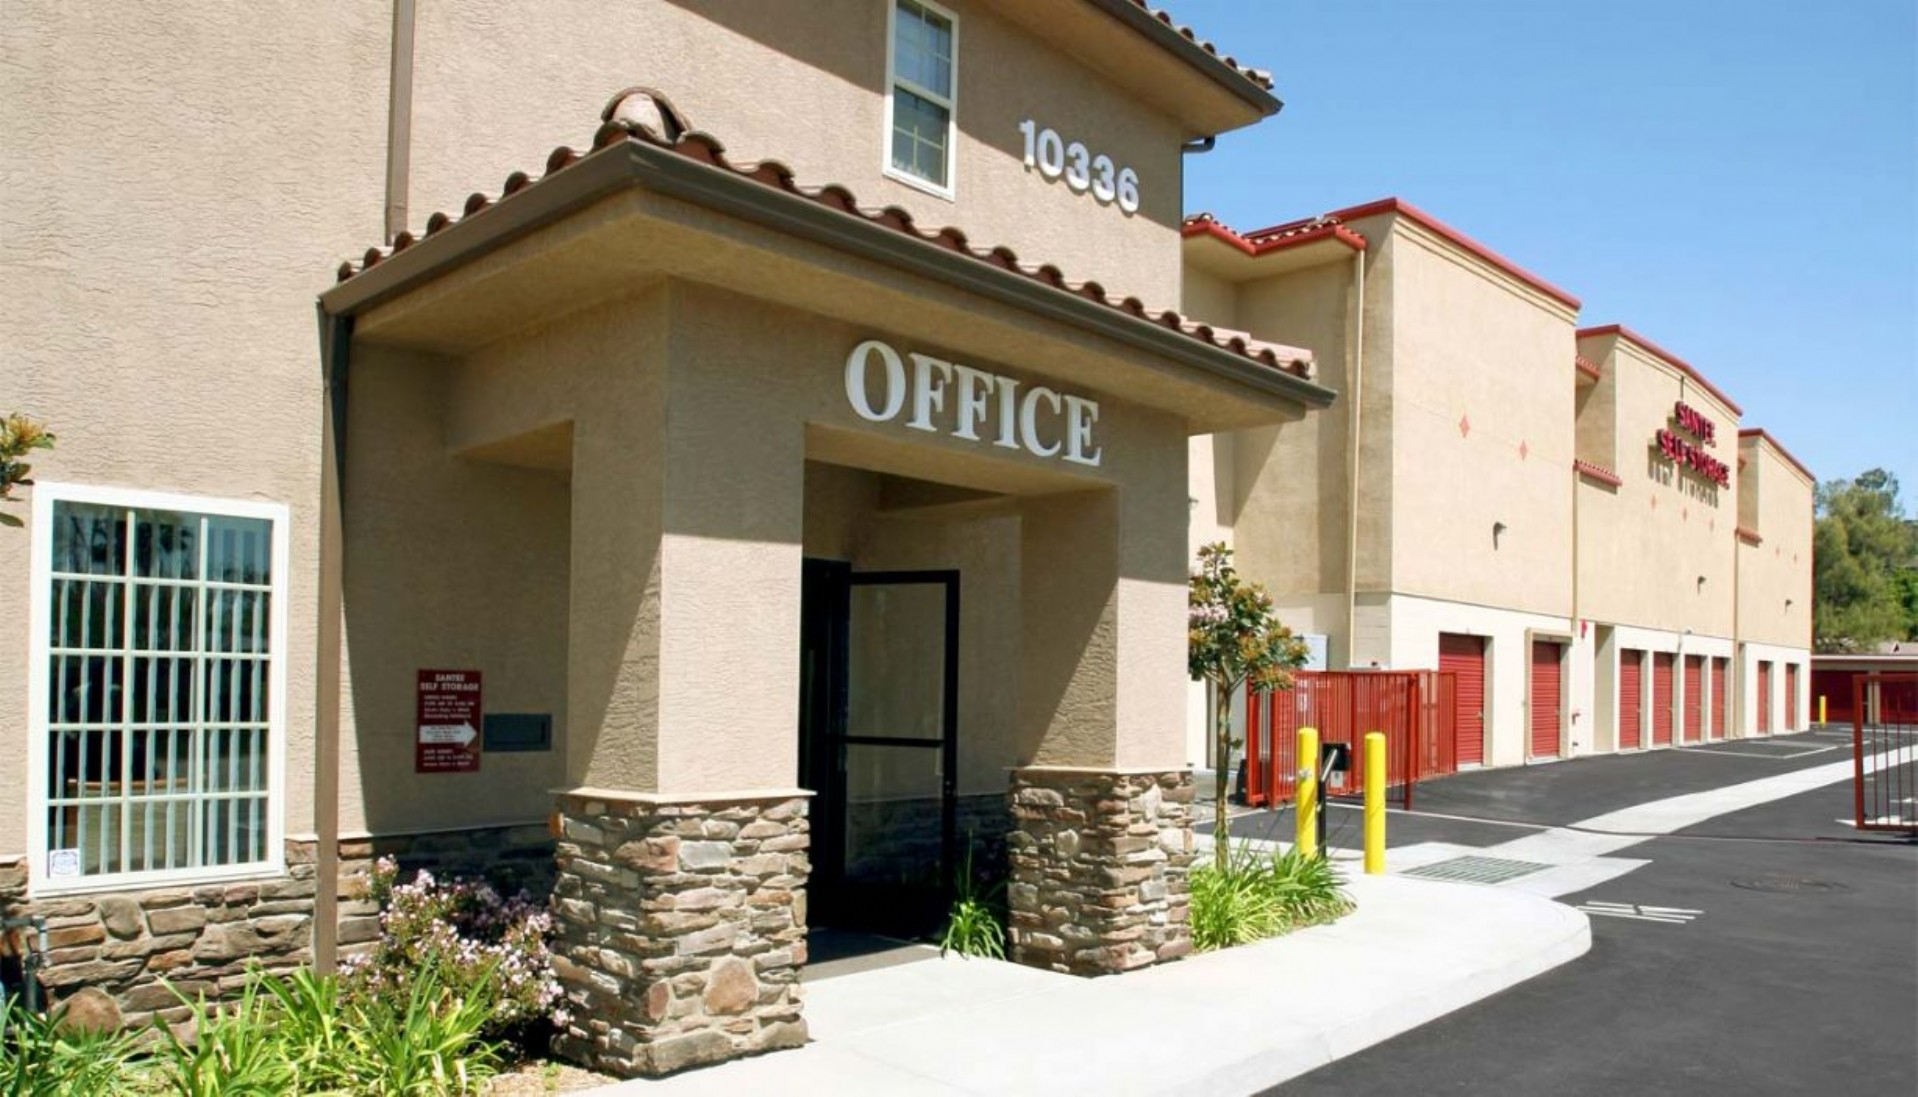 Price Self Storage Santee front of rental office building